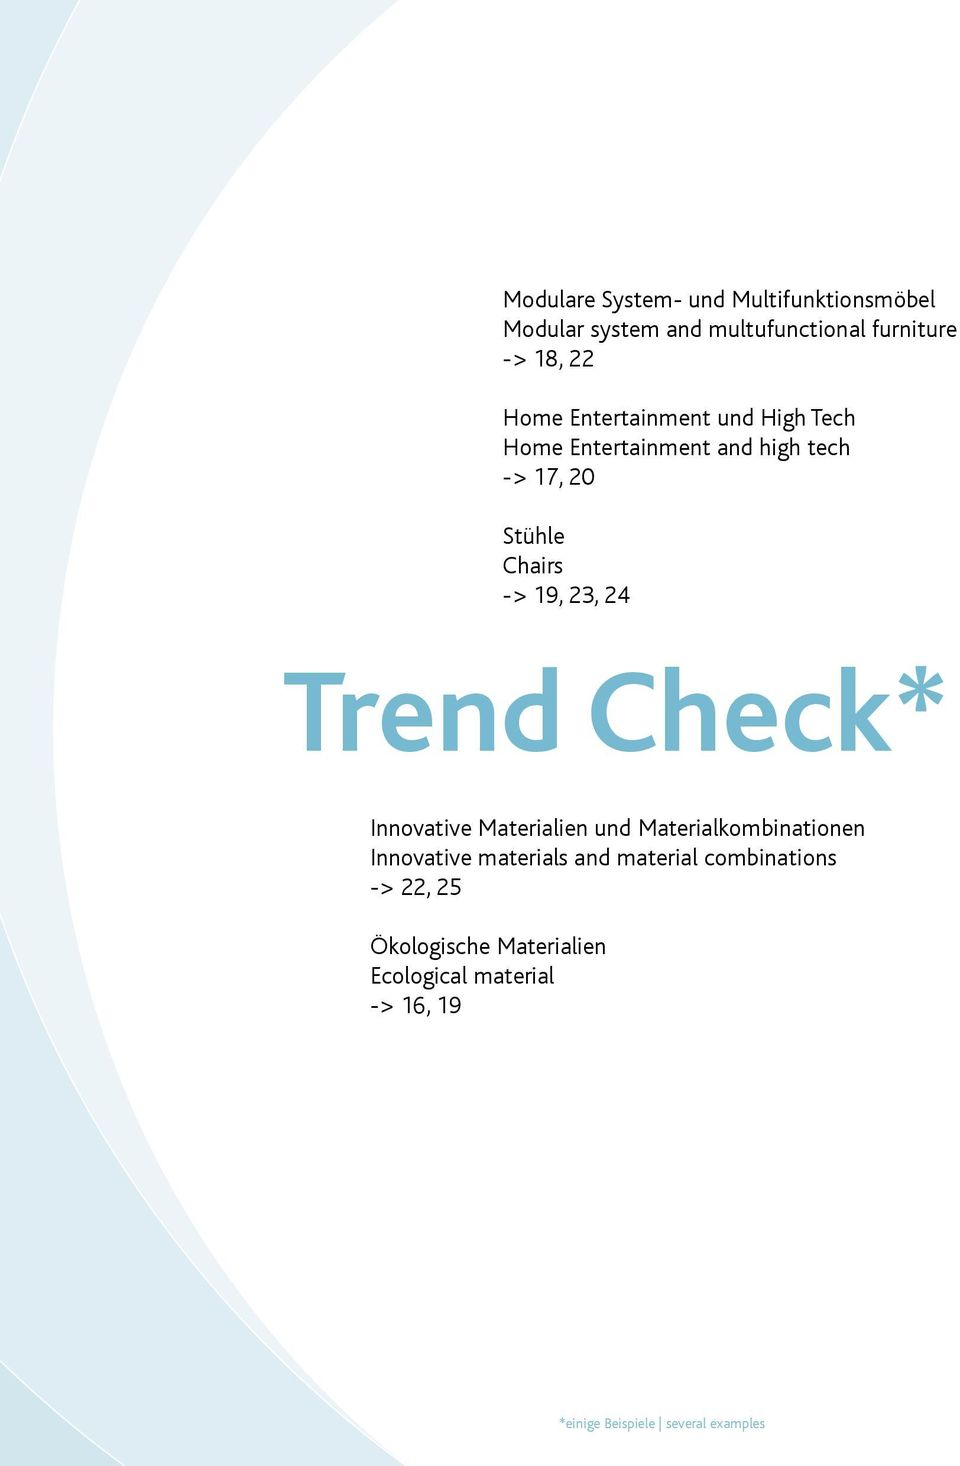 Trend Check* Innovative Materialien und Materialkombinationen Innovative materials and material